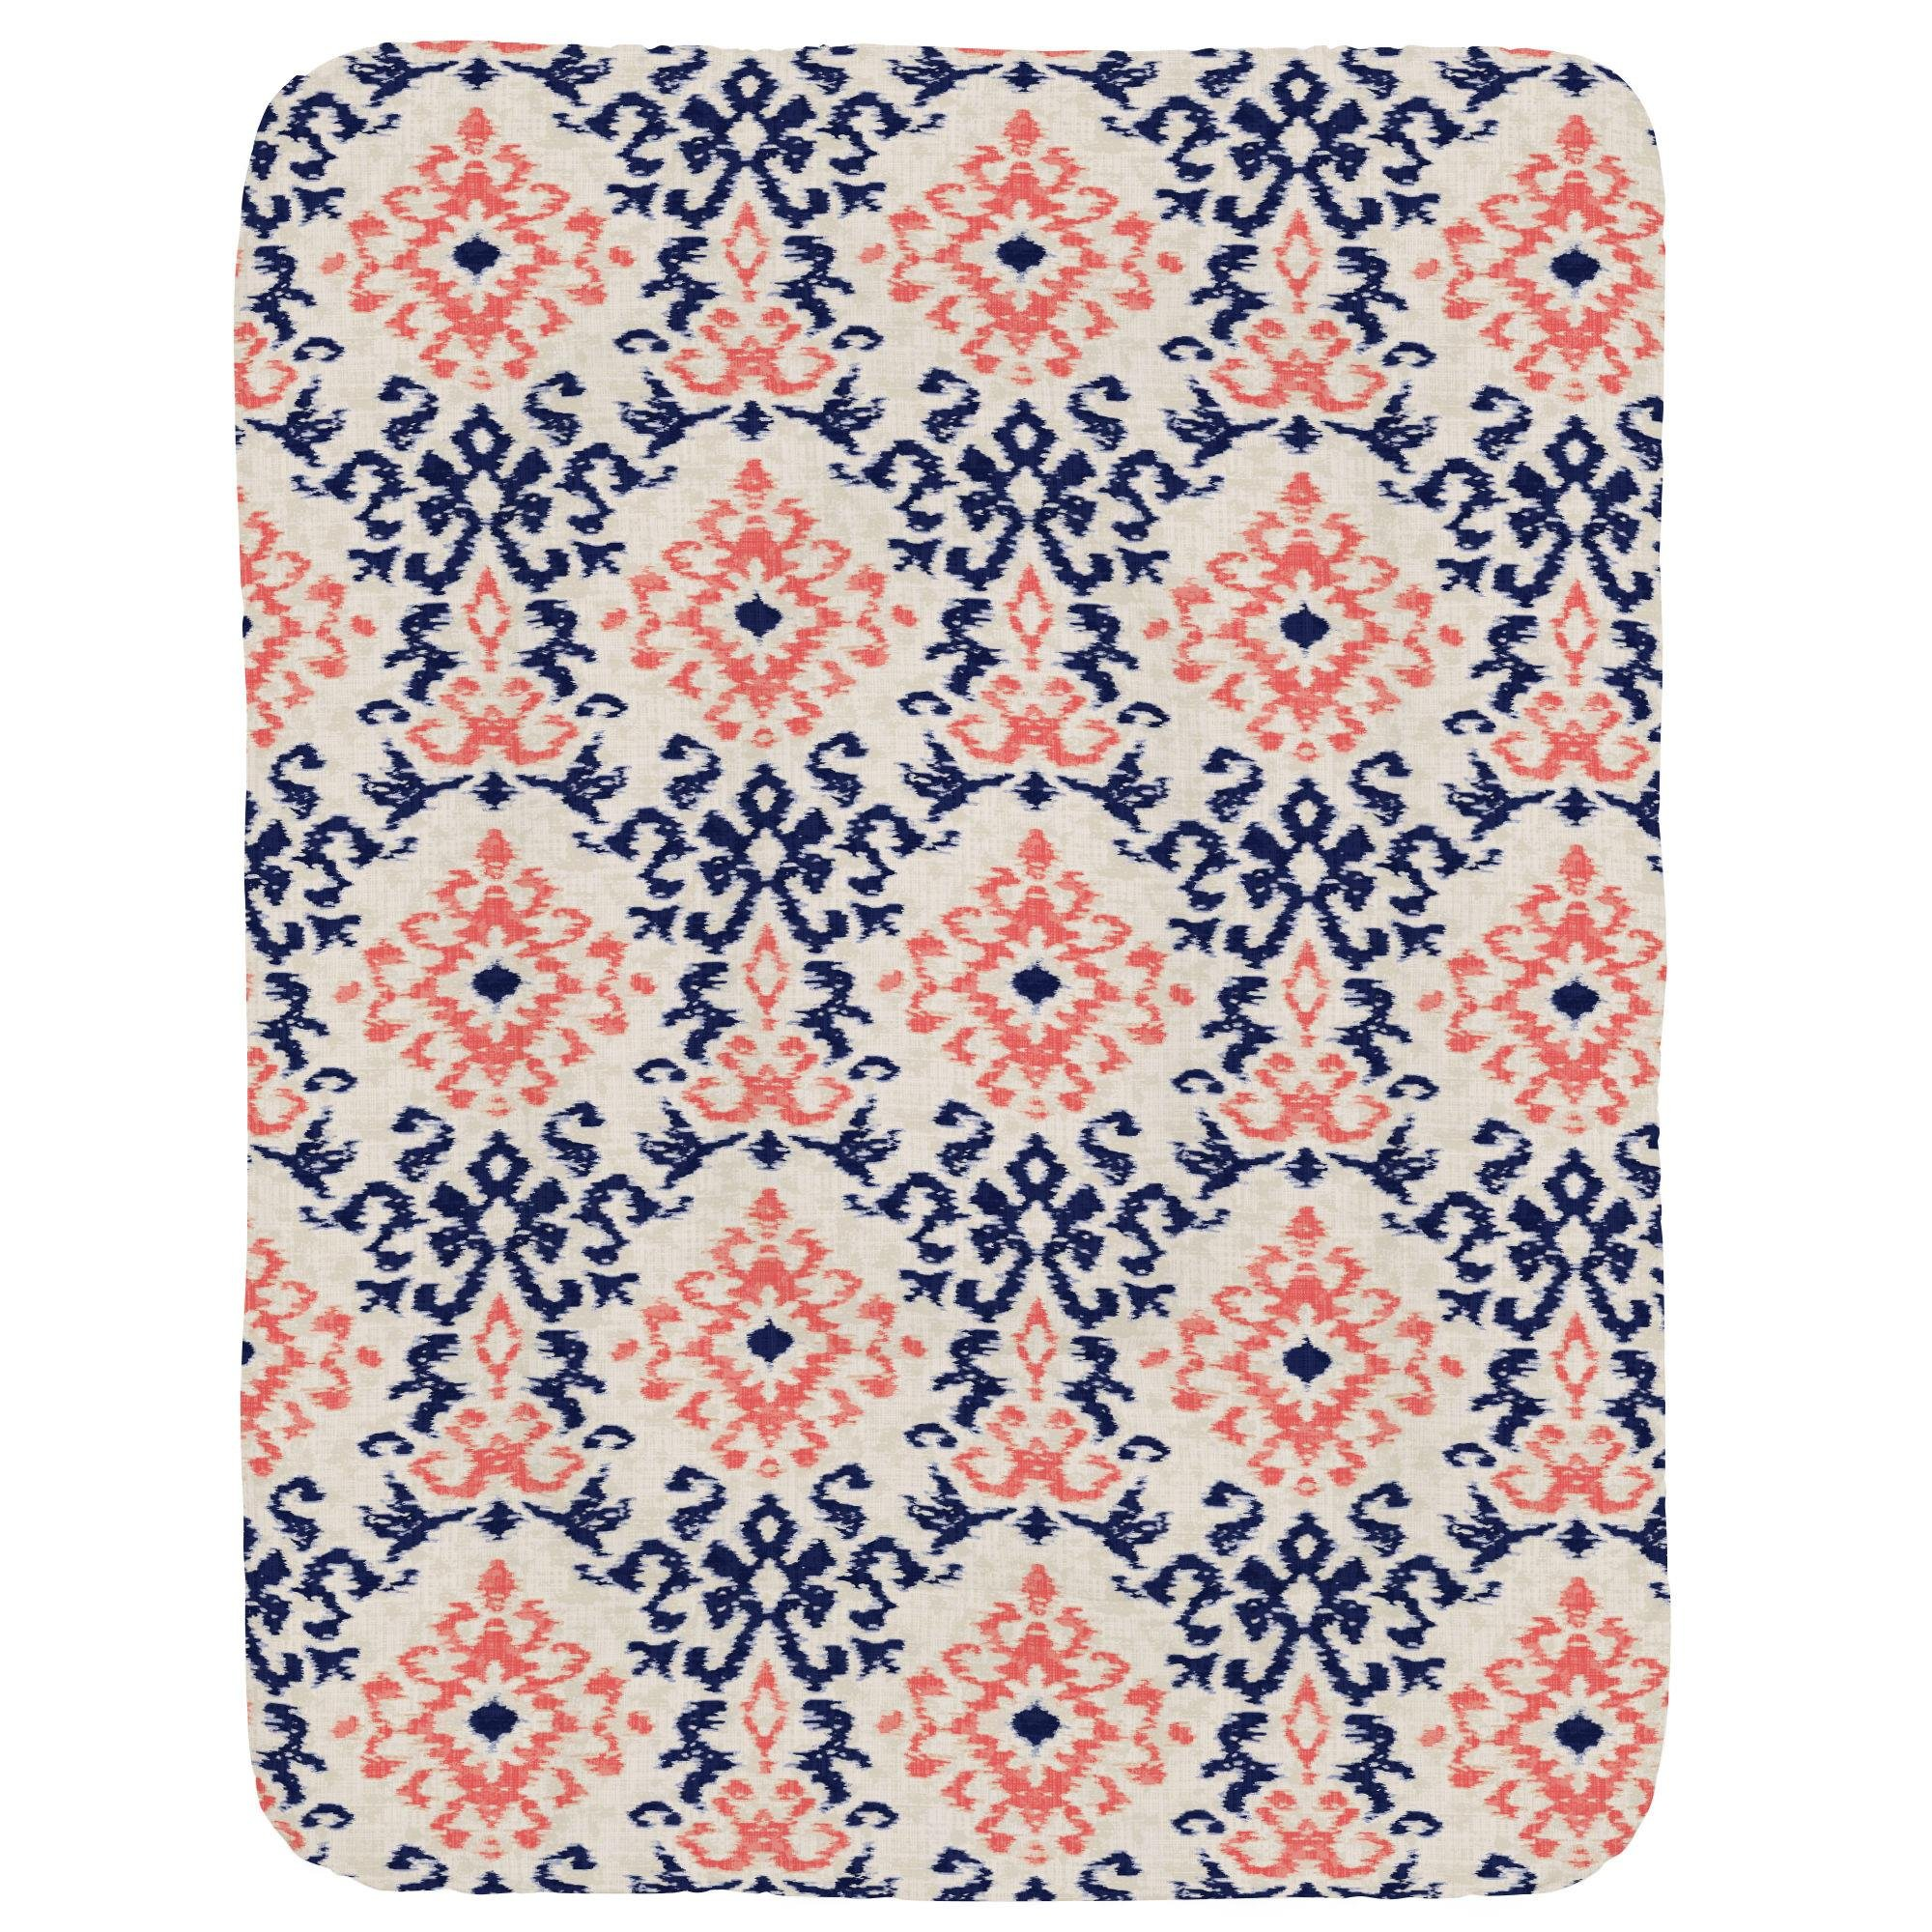 Carousel Designs Navy and Coral Ikat Damask Crib Comforter